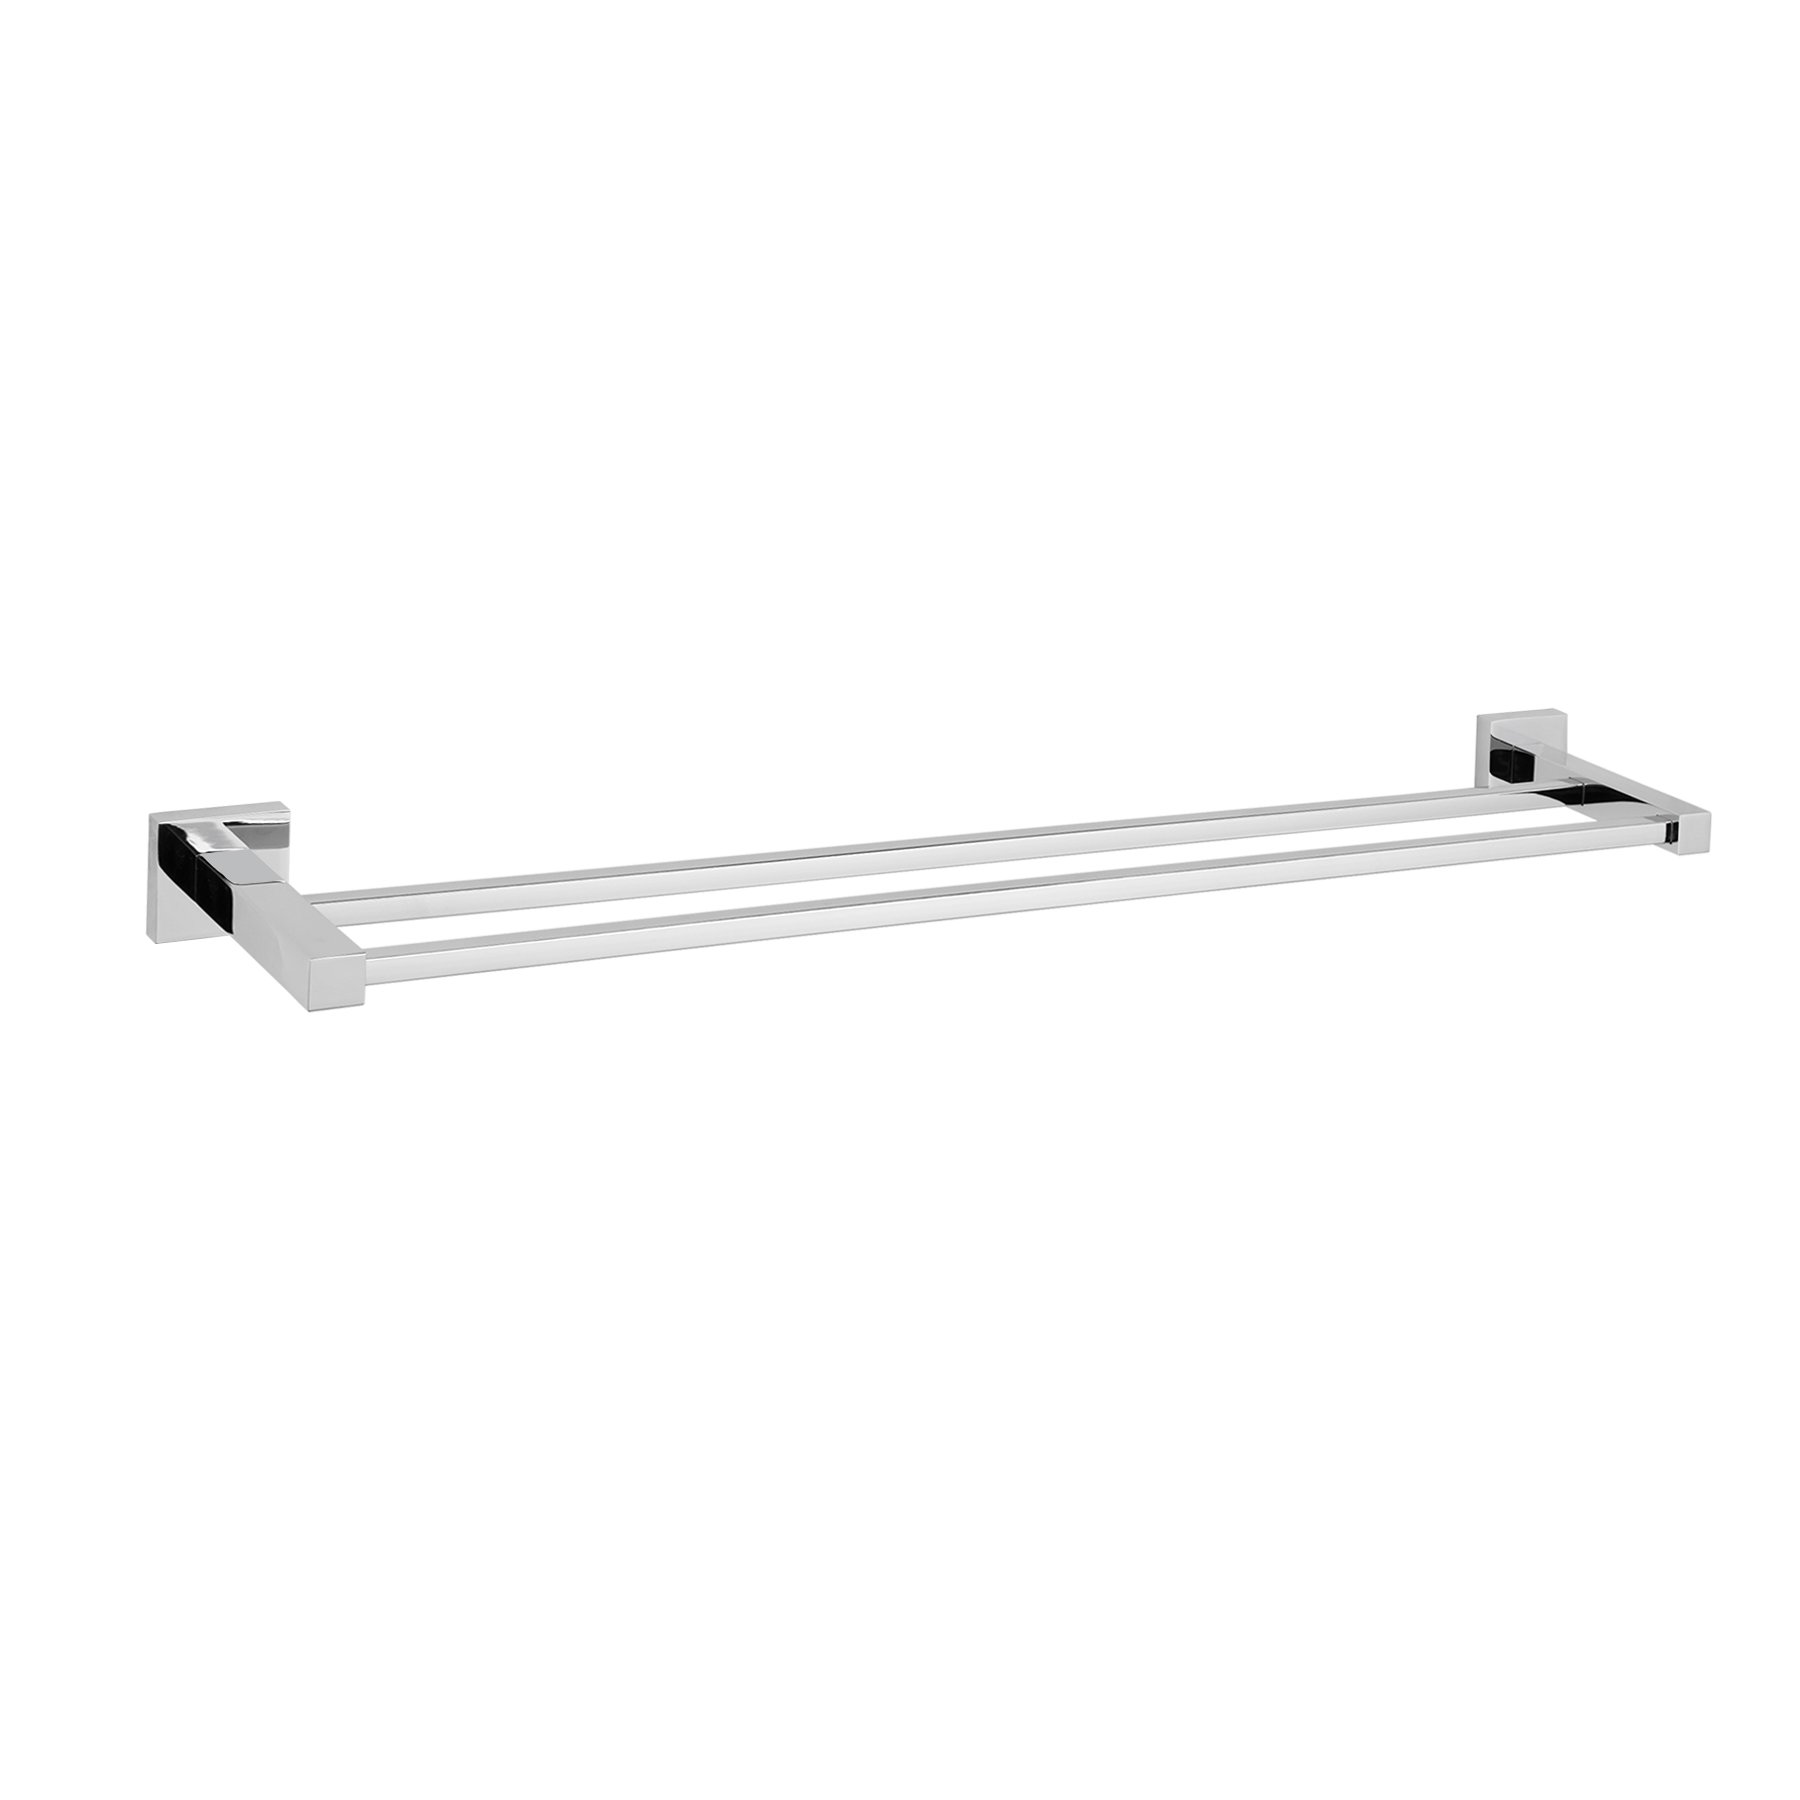 MAYKKE Zane 25'' Stainless Steel Double Towel Bar | Modern Wall Mounted Towel Holder for Bathroom, Kitchen, Shower | Polished Chrome, XYA1000901 by Maykke (Image #6)